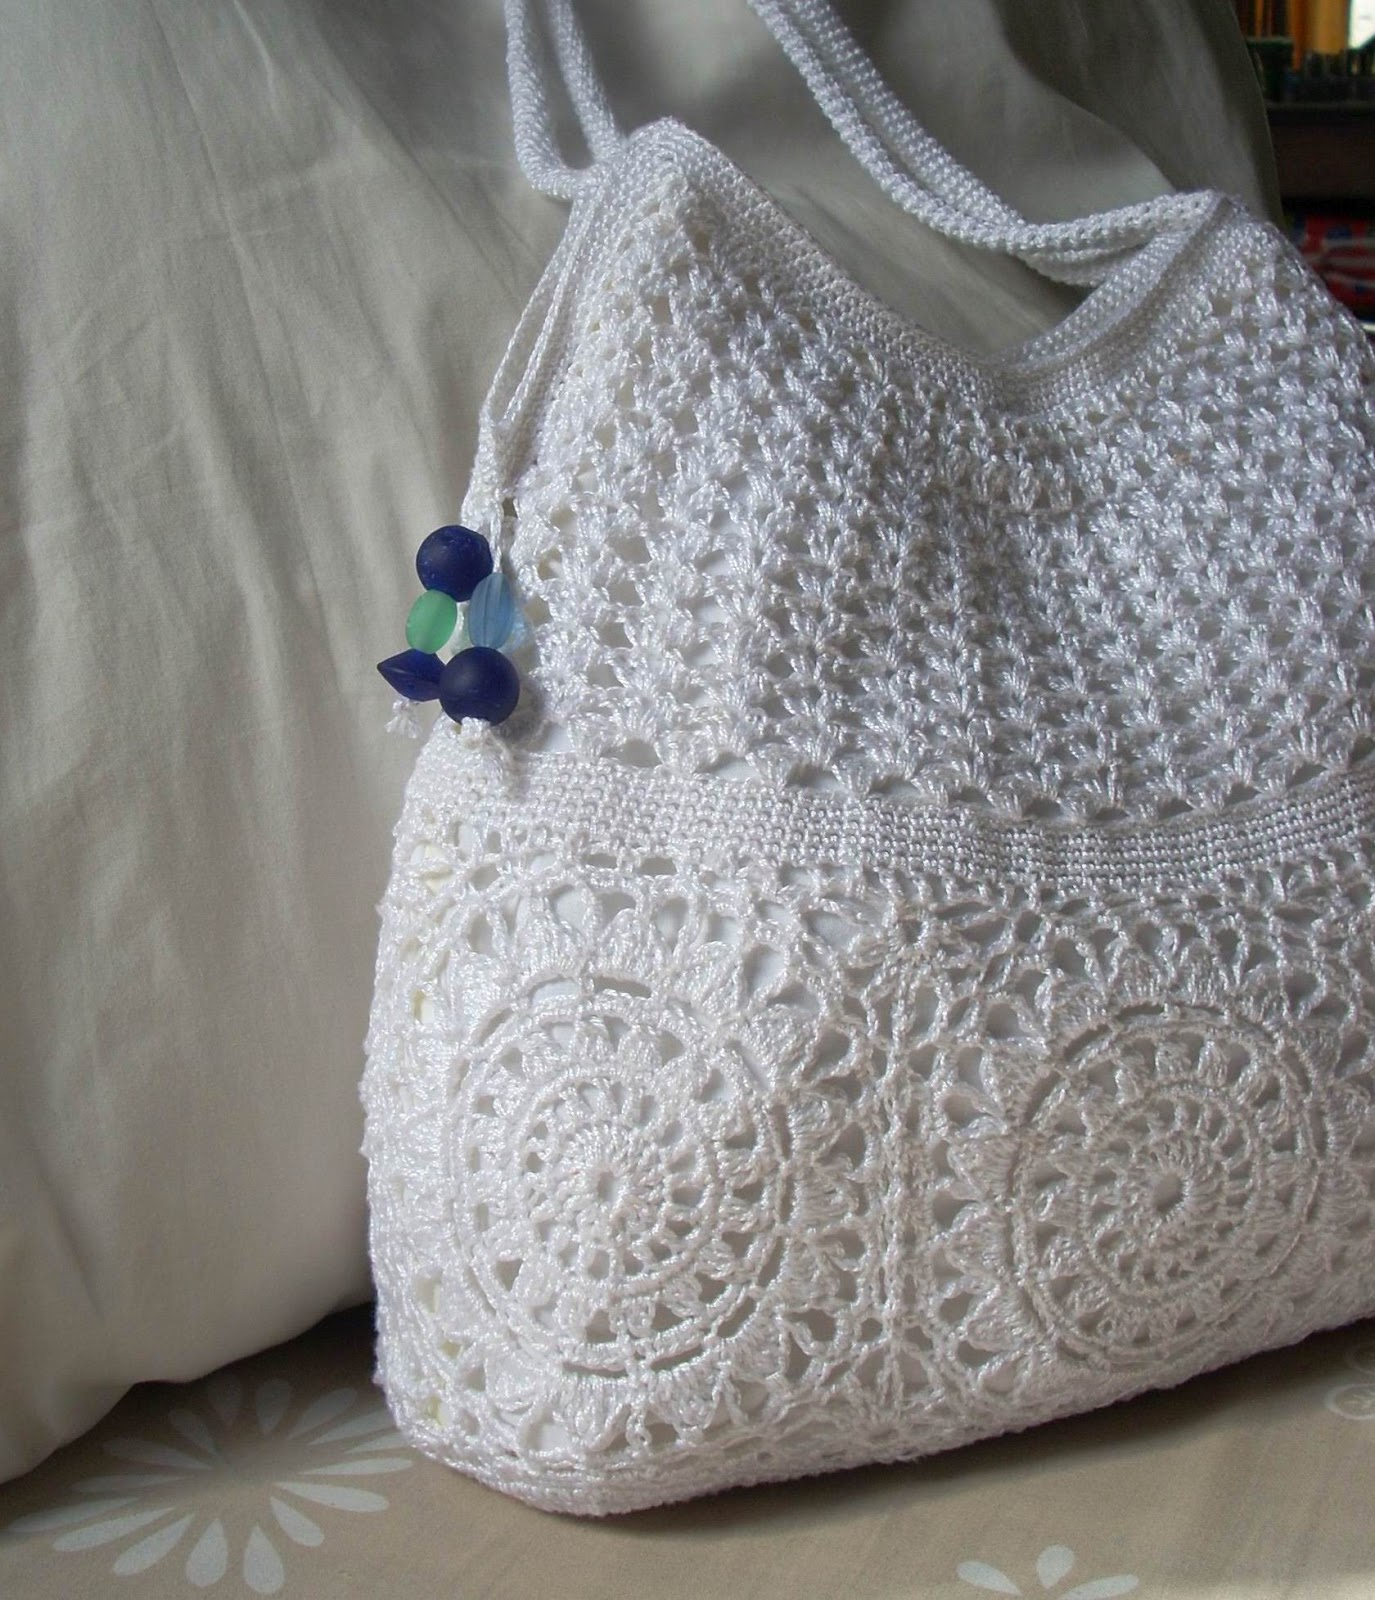 Pinterest Crochet Bags : Crochet Bags On Pinterest Crochet Bags Crochet Handbags And Crochet ...